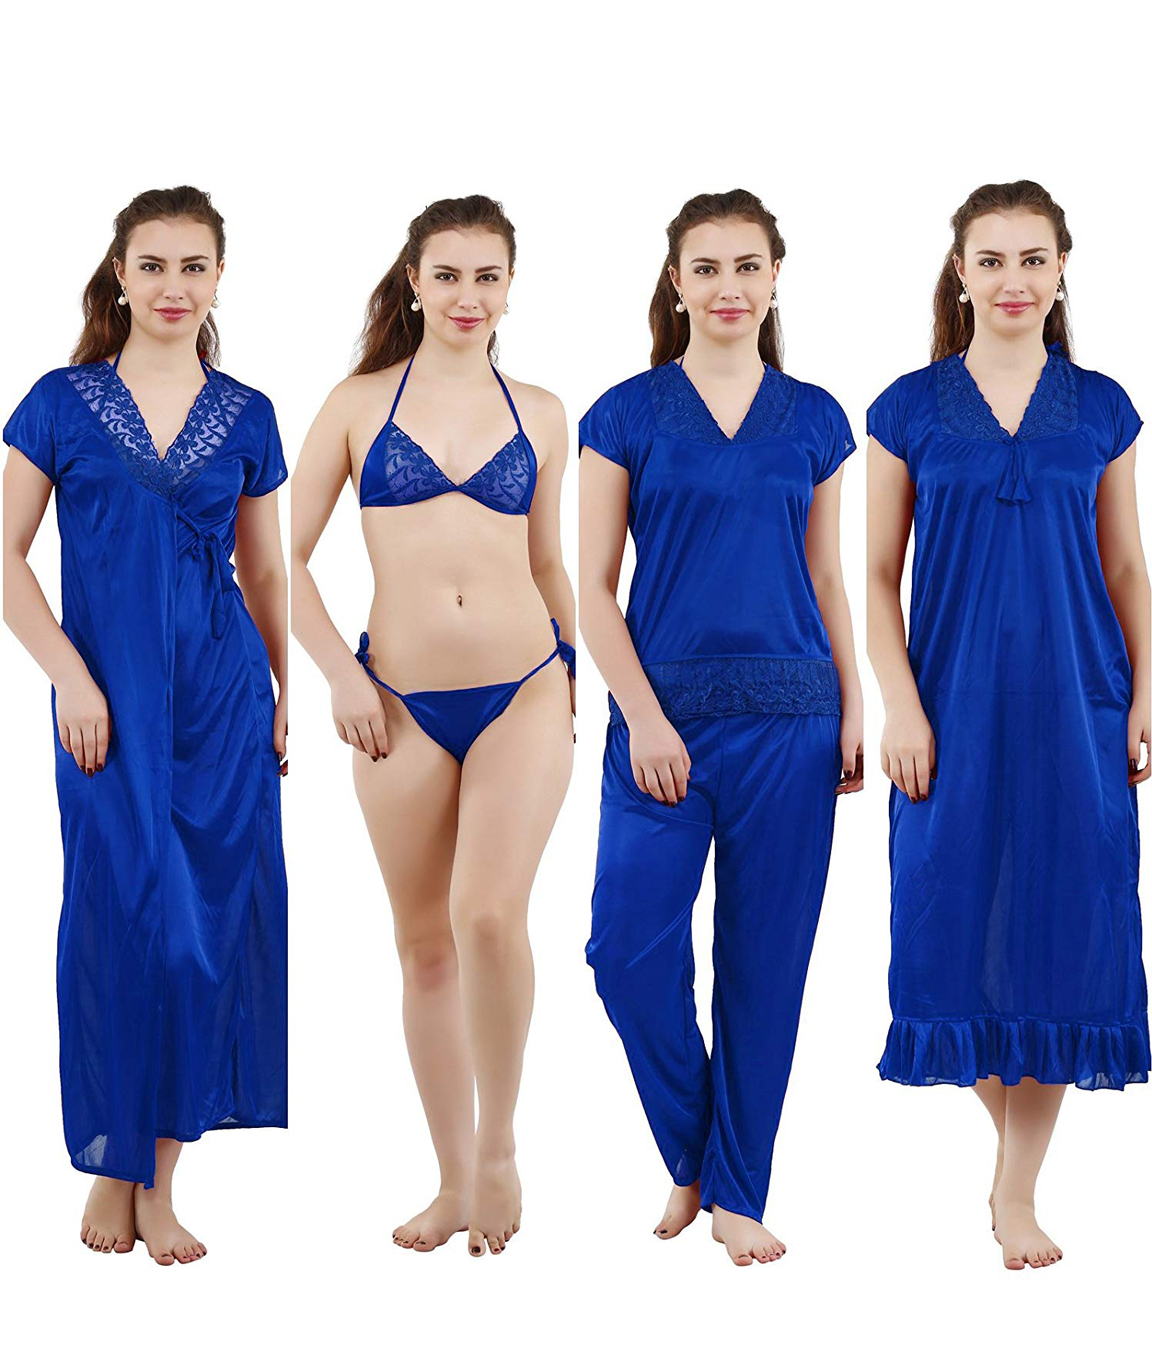 Romaisa Women`s Satin Nighty, Wrap Gown, Top, Pajama, Bra and Thong (Free Size) (Pack of 6) COLOUR : ROYAL BLUE